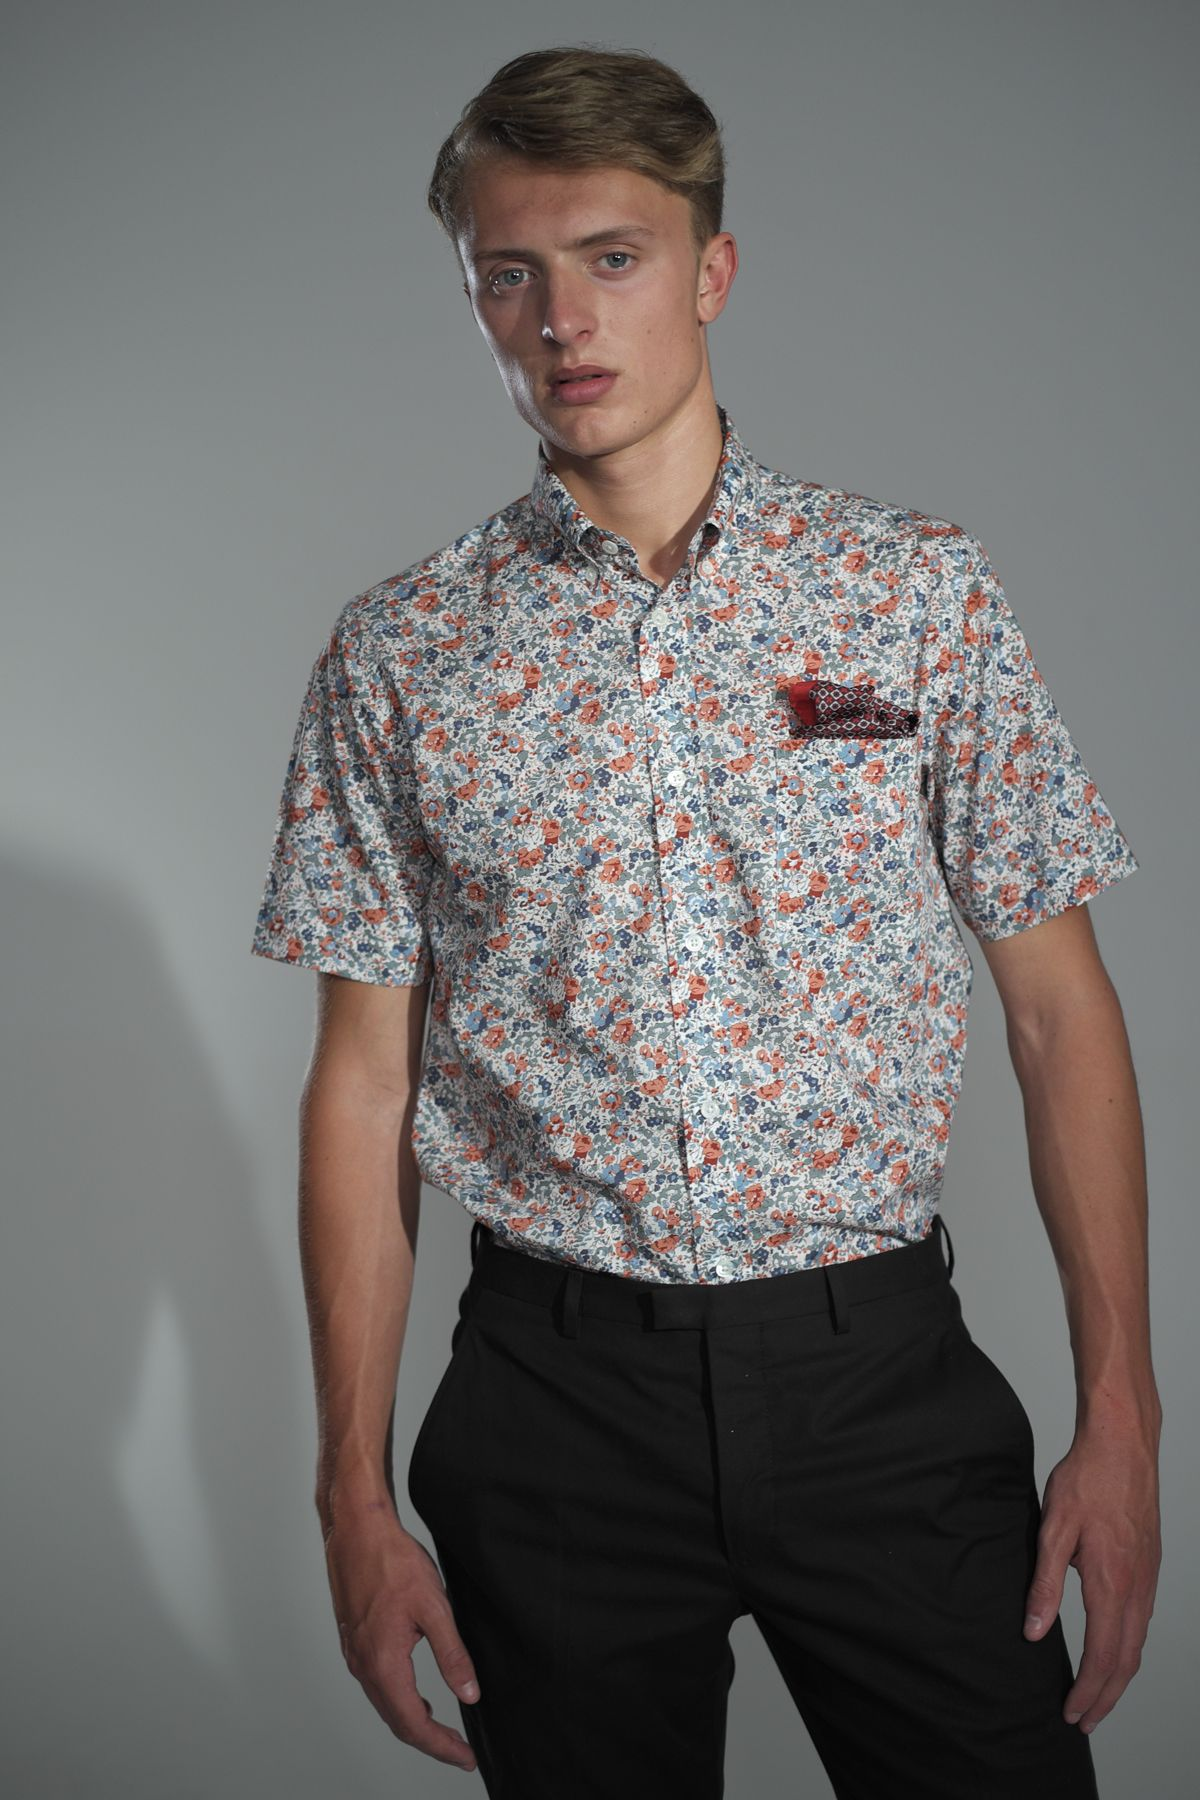 Men's SS13 Liberty London Collection